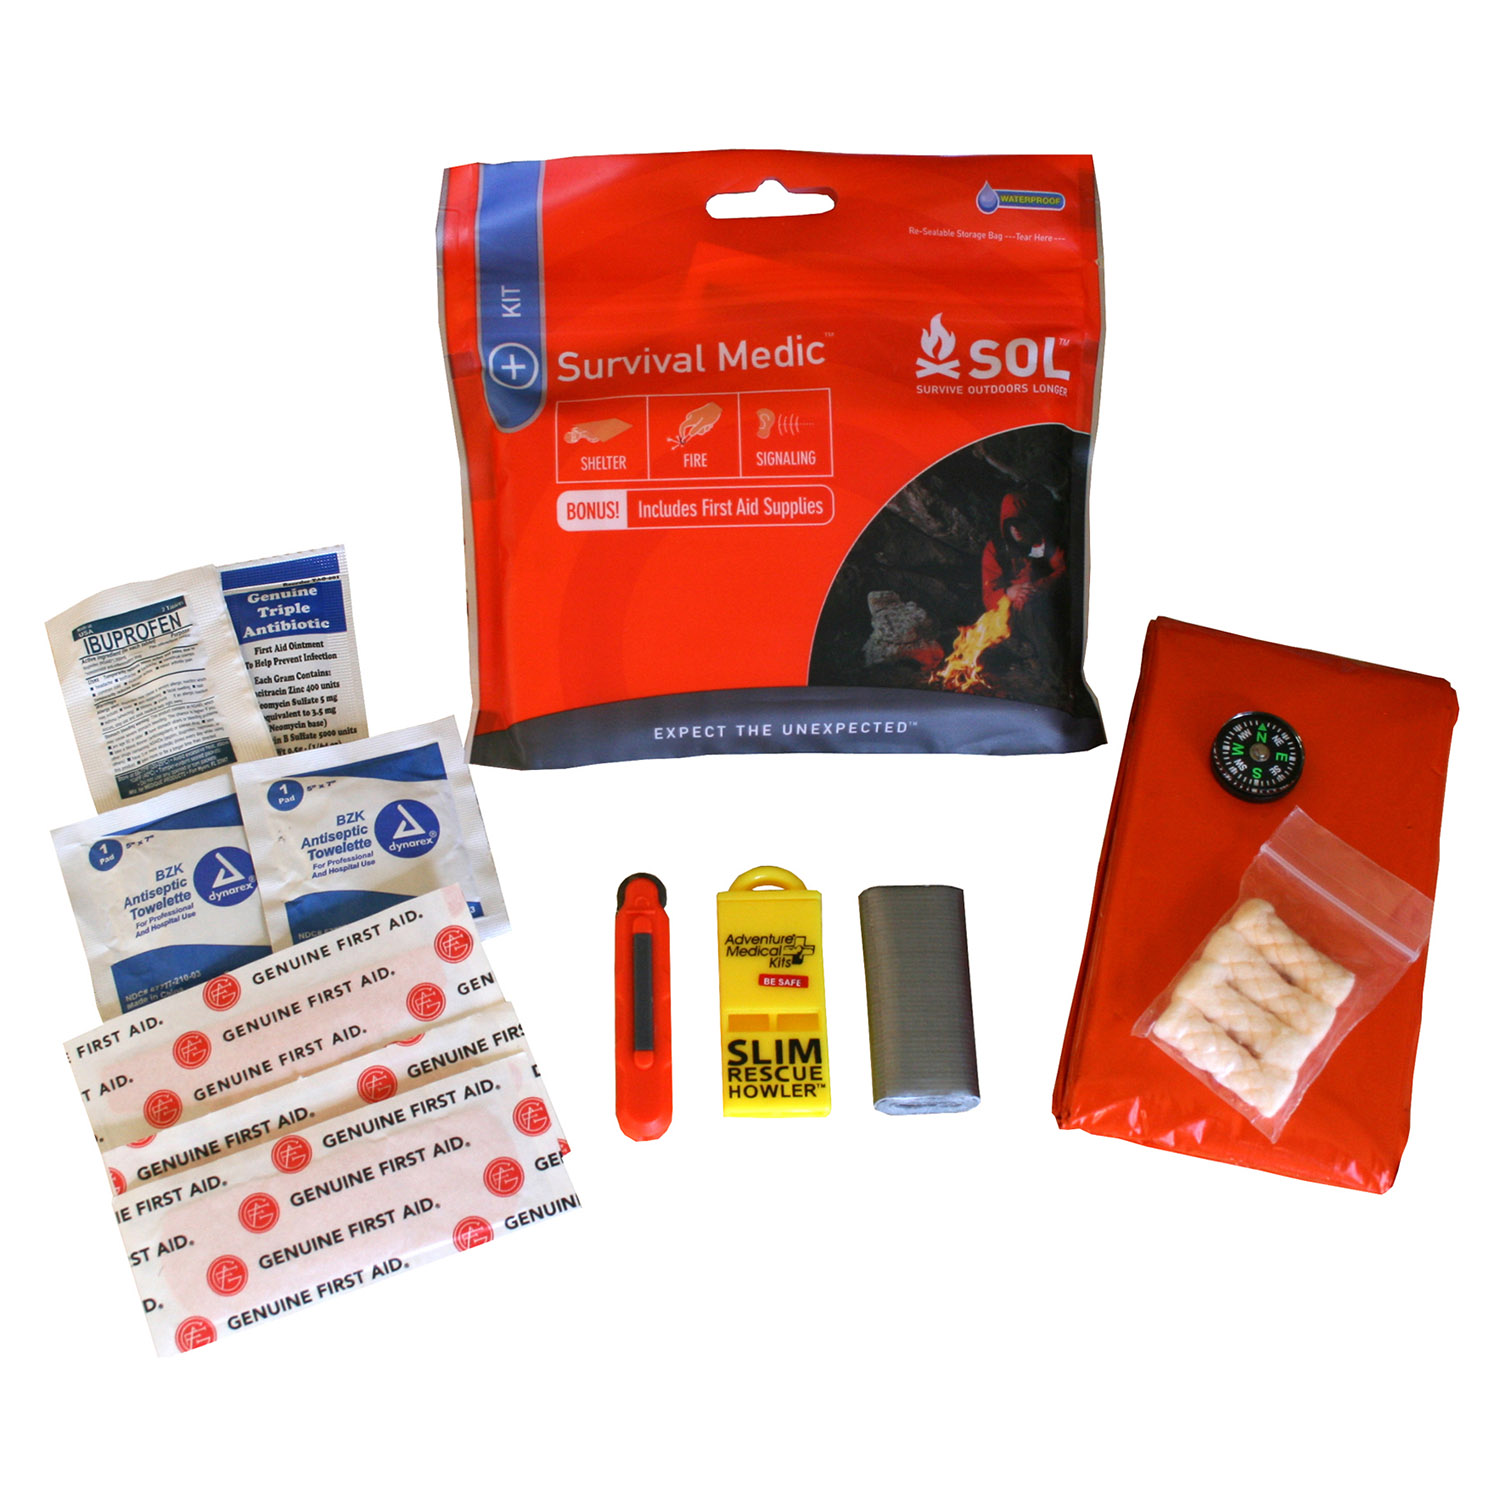 Adventure Medical Survive Outdoors Longer Survival Medic Kit